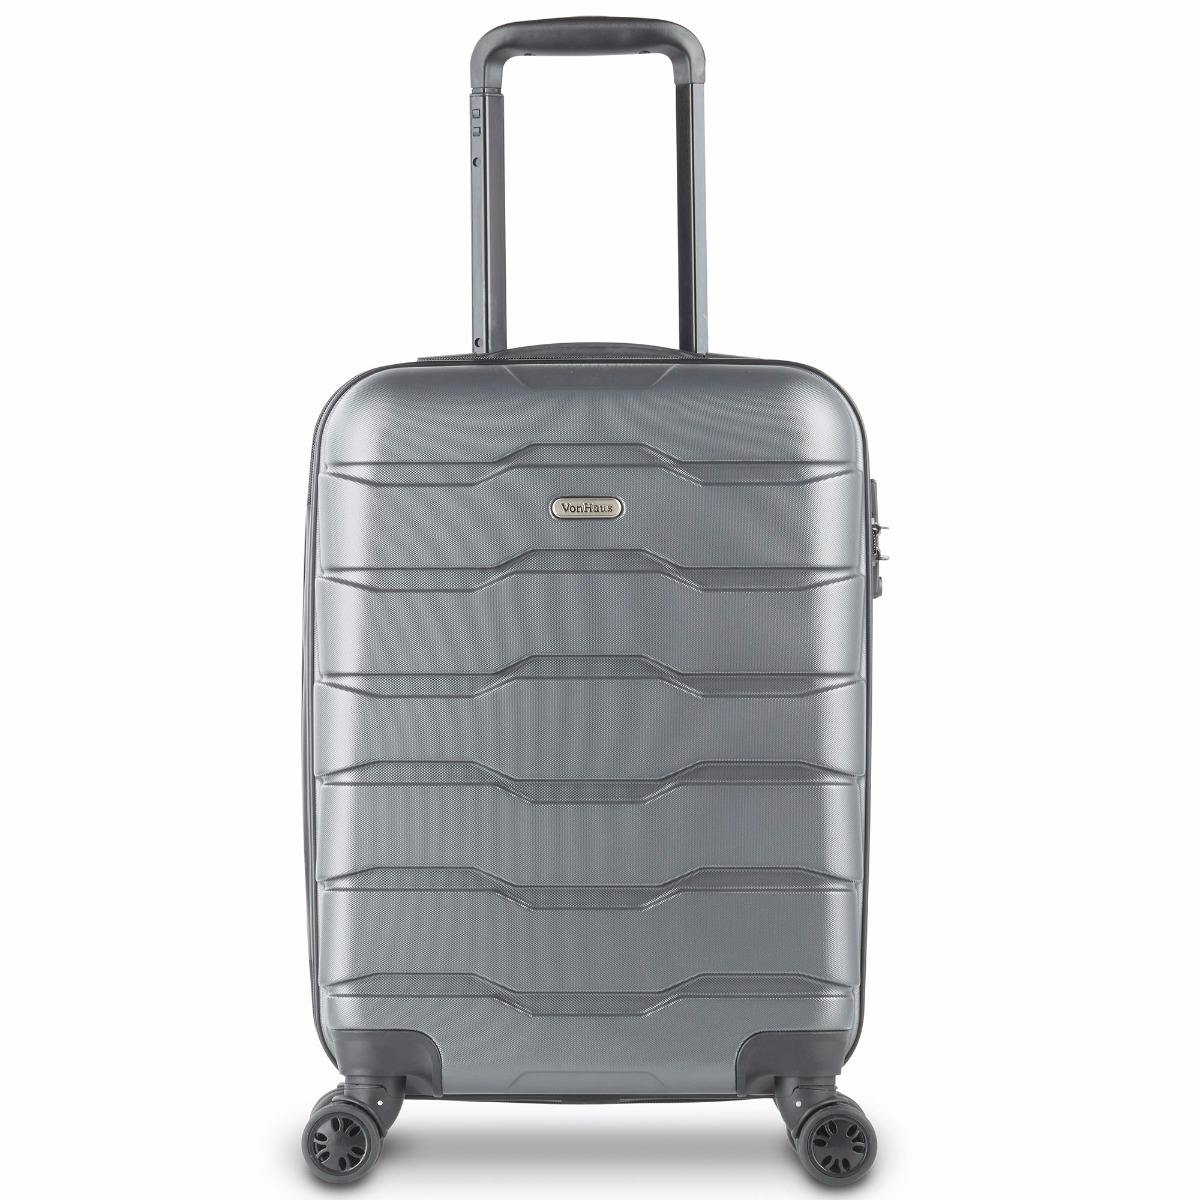 Lightweight Cabin Luggage Gray Carry On Hand Luggage Lightweight Hard Shell Travel Suitcase With 4 Wheel Spinner And Tsa Lock